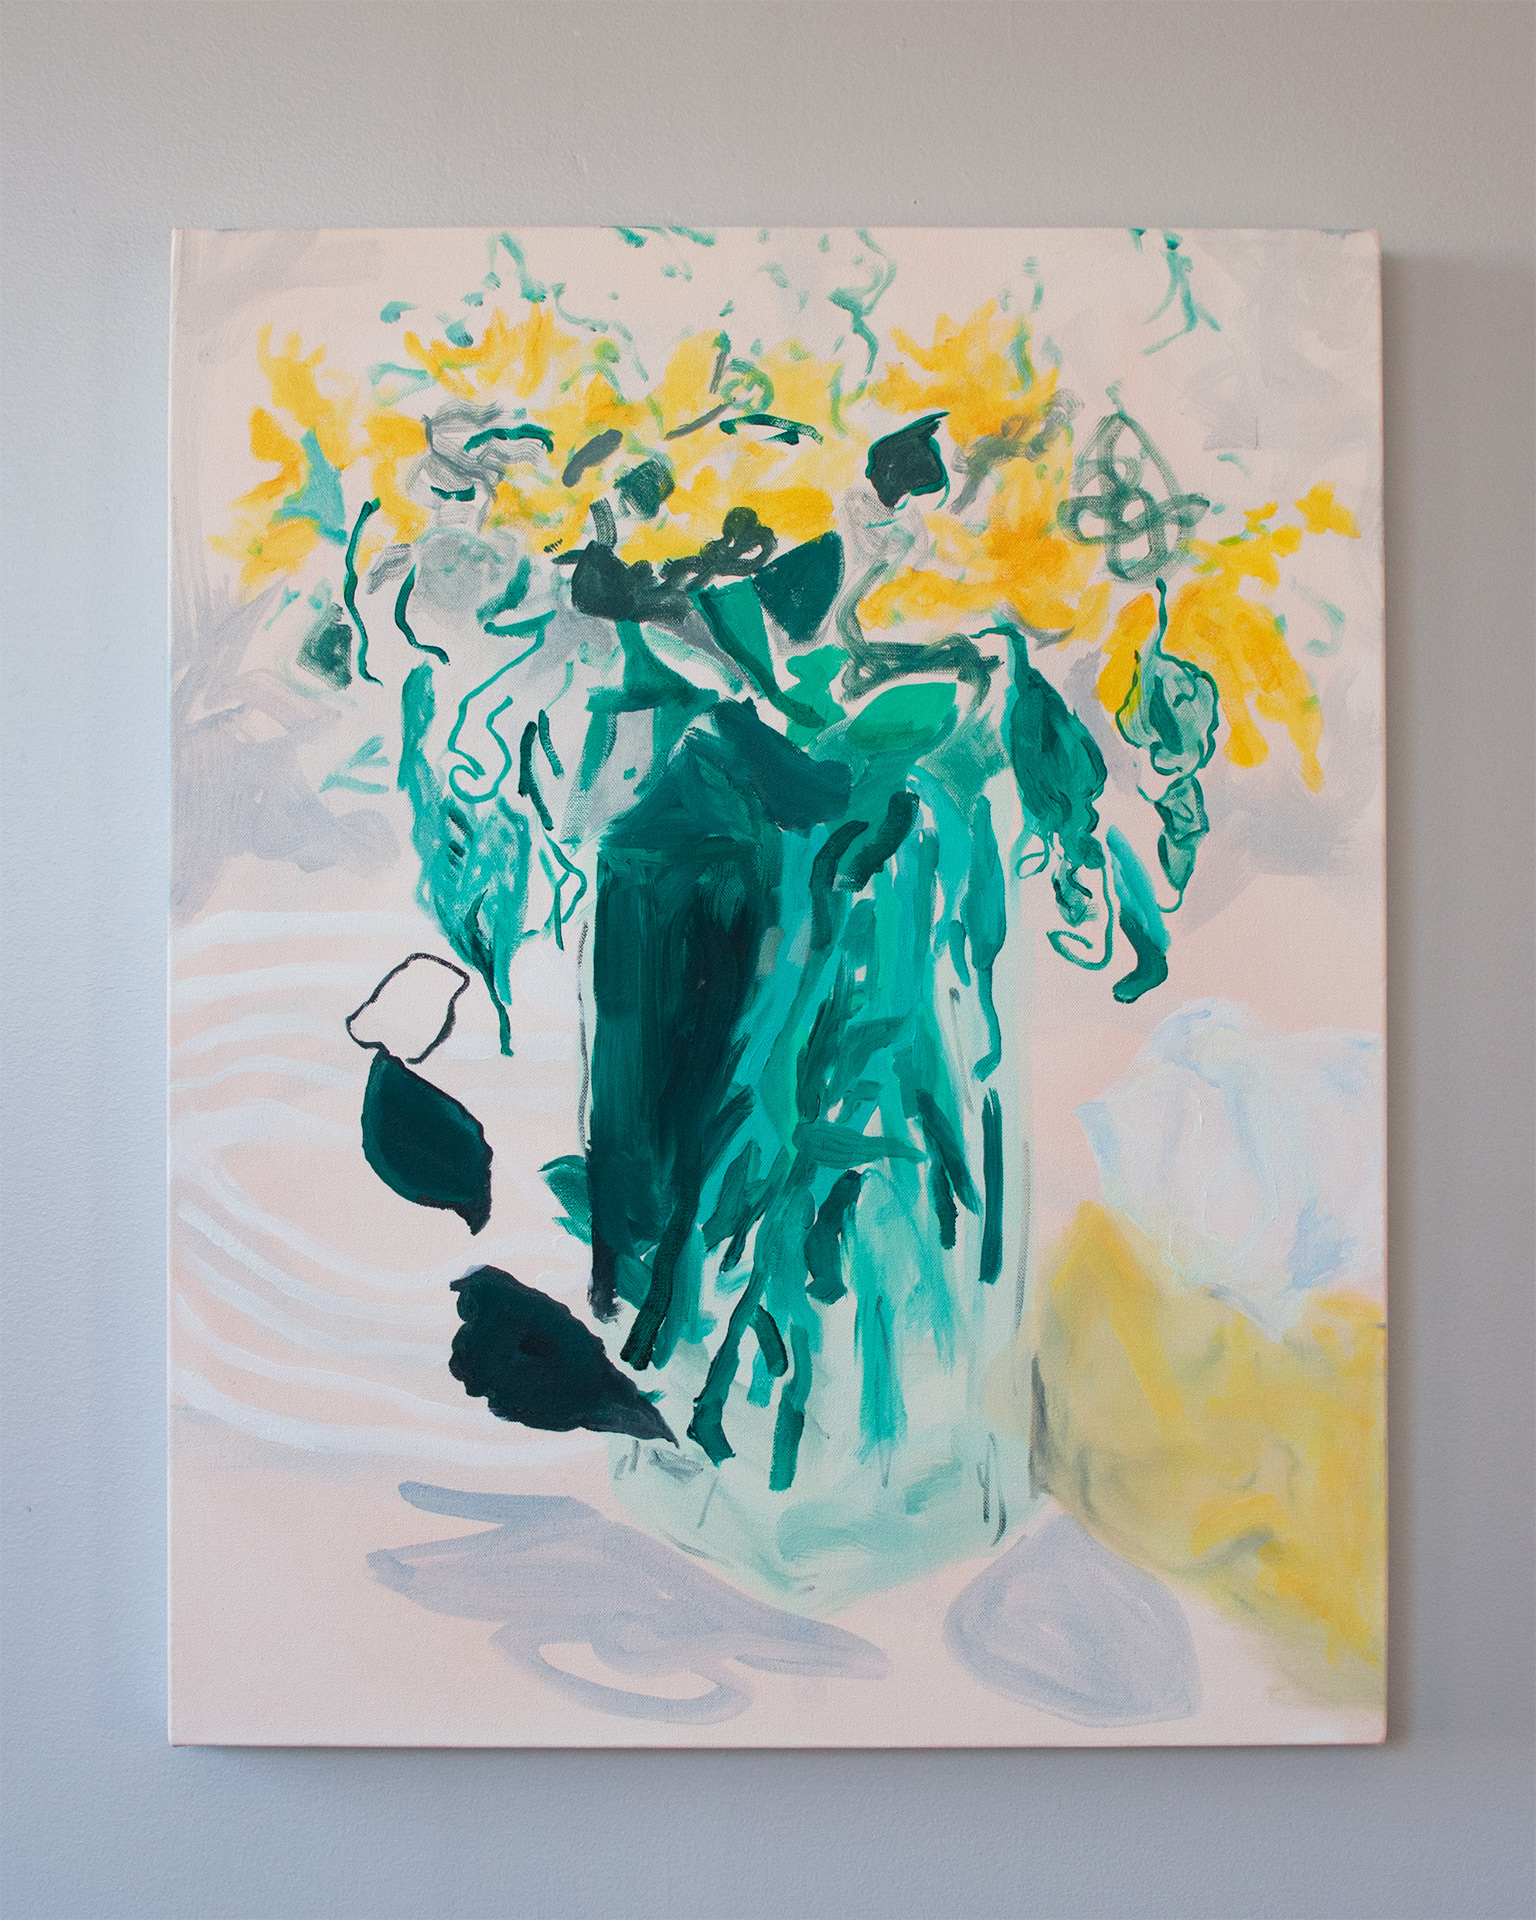 Angela Zhang, Grandpa's house (yellow flowers from cousin Shuang Shuang), 2018, oil on canvas, 30 x 24 in